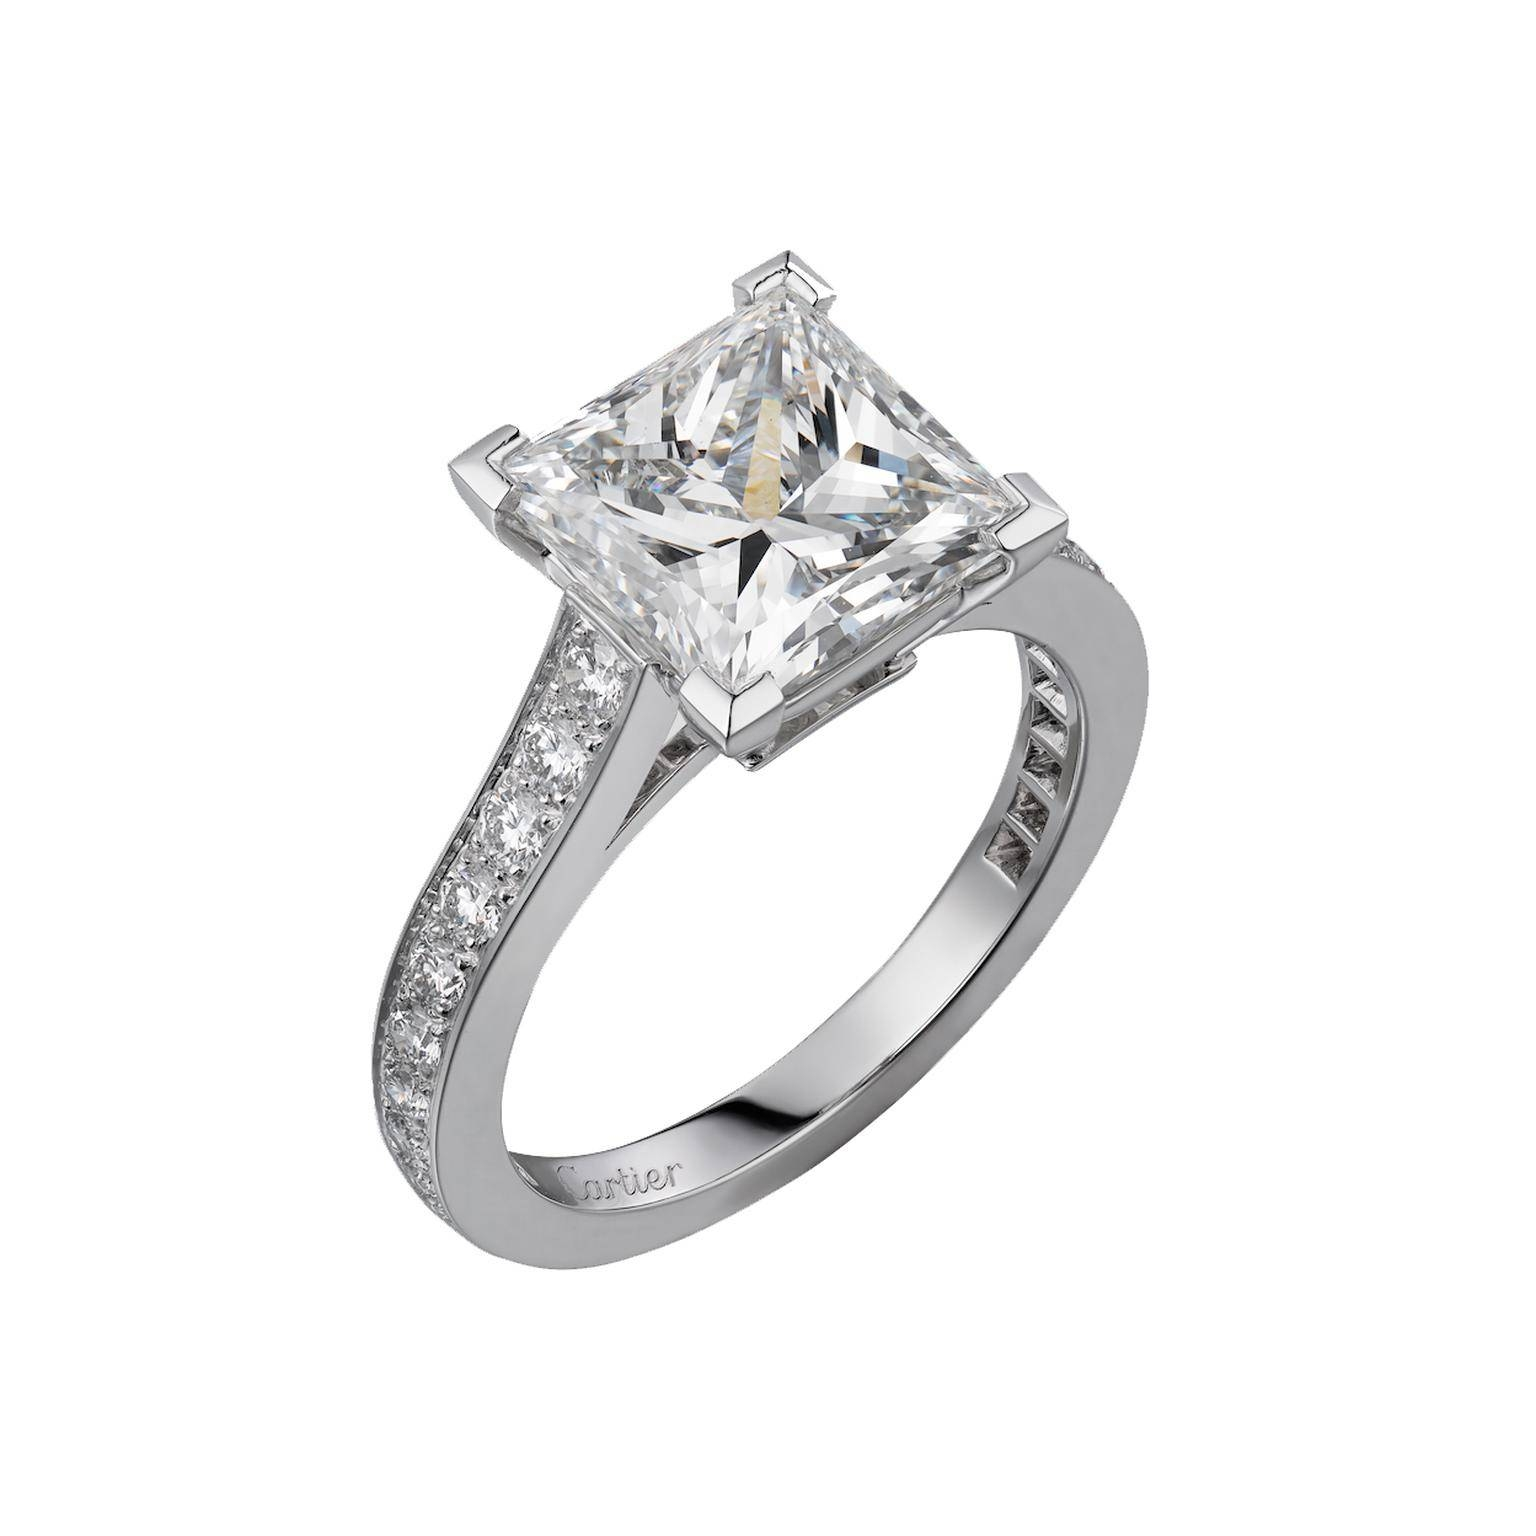 1895 Solitaire Princess Cut Diamond Engagement Ring | Cartier In Princess Shaped Engagement Rings (View 2 of 15)